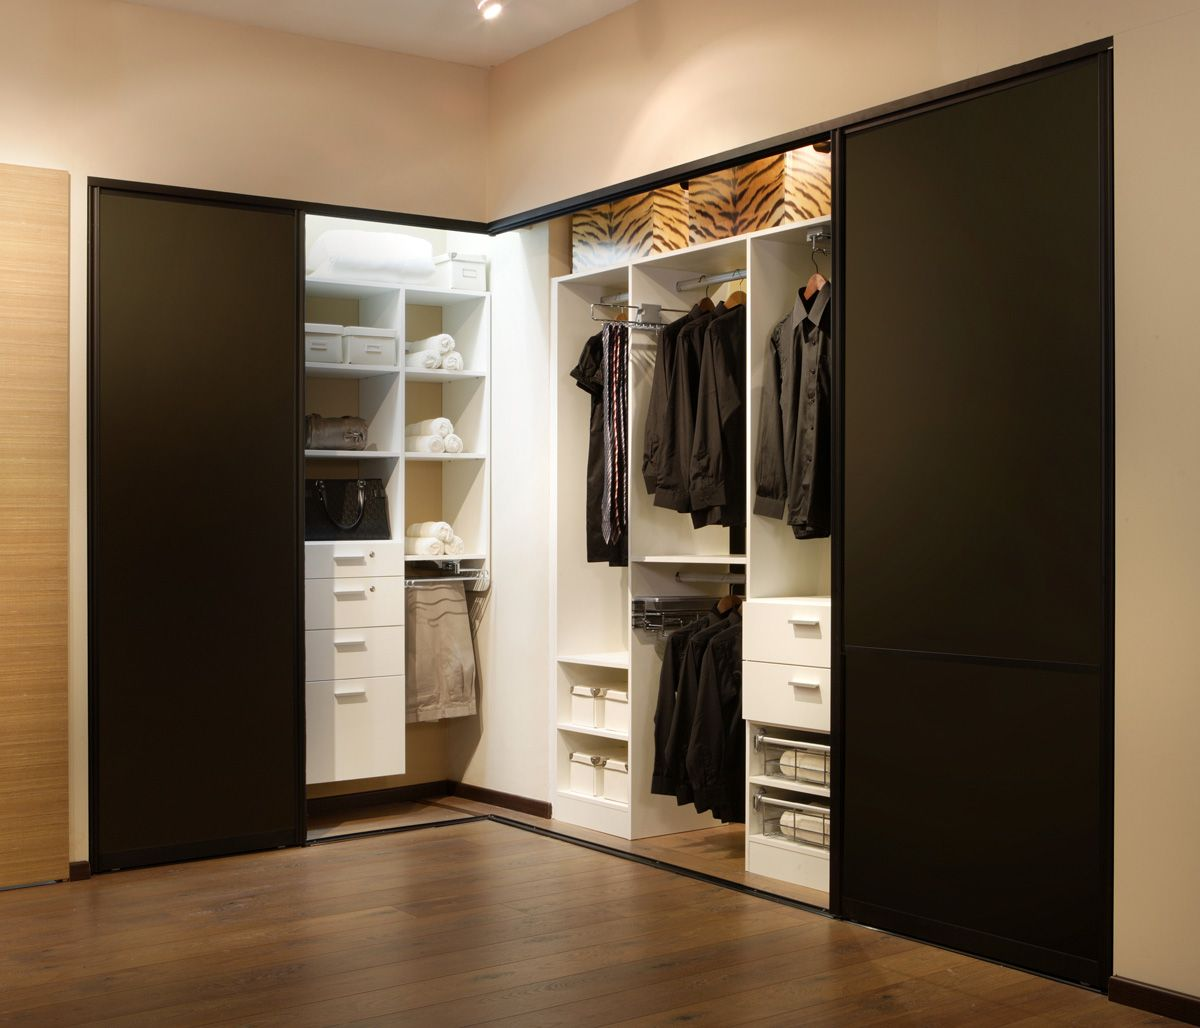 Image Result For L Shaped Built In Wardrobe Sliding Doors Modern Closet Doors Closet Designs Built In Wardrobe